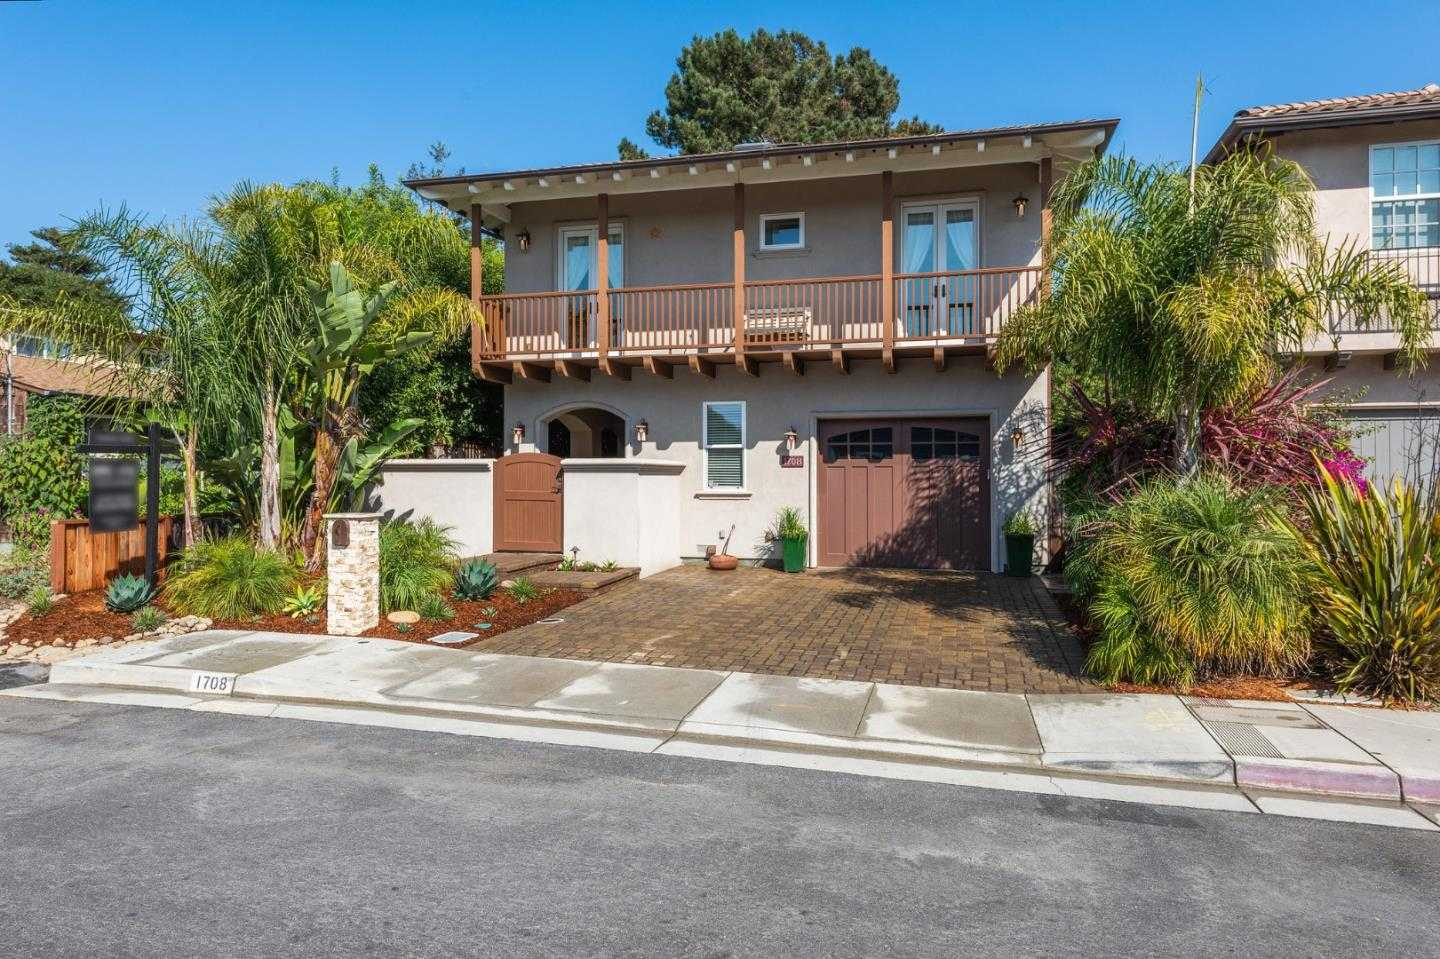 $1,699,000 - 3Br/3Ba -  for Sale in Capitola